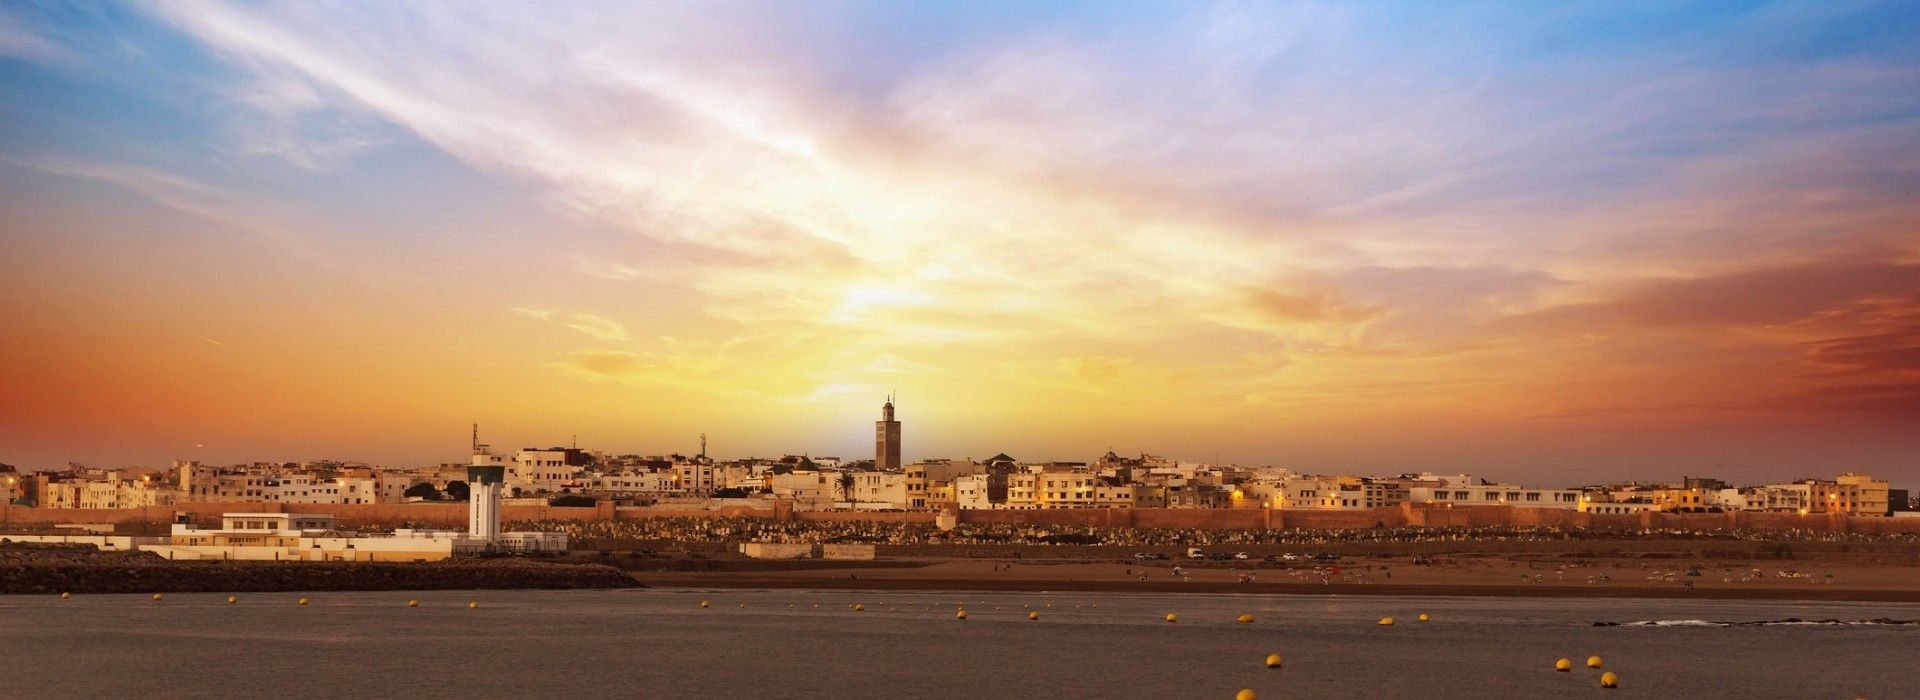 Natural landmarks sightseeing Tours in Morocco